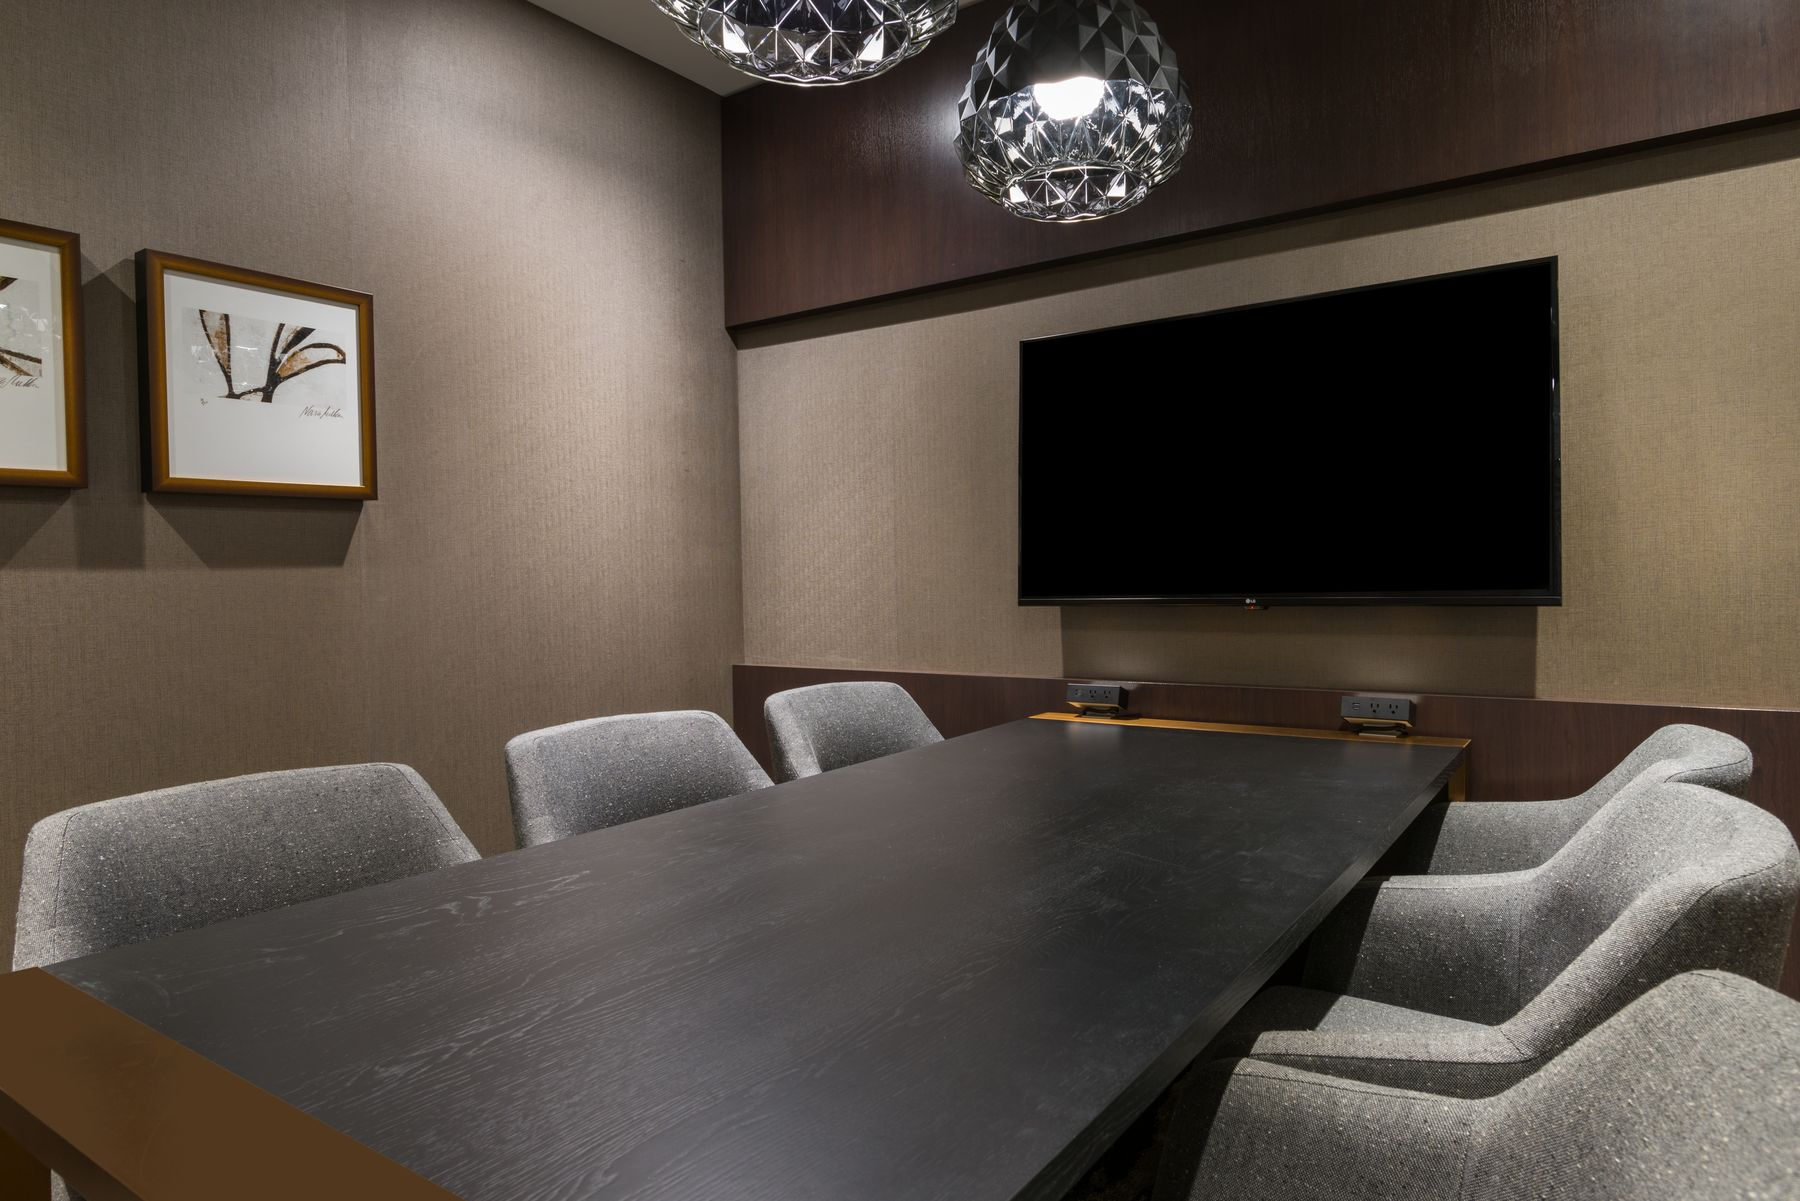 Conference table and chairs with TV mounted to wall